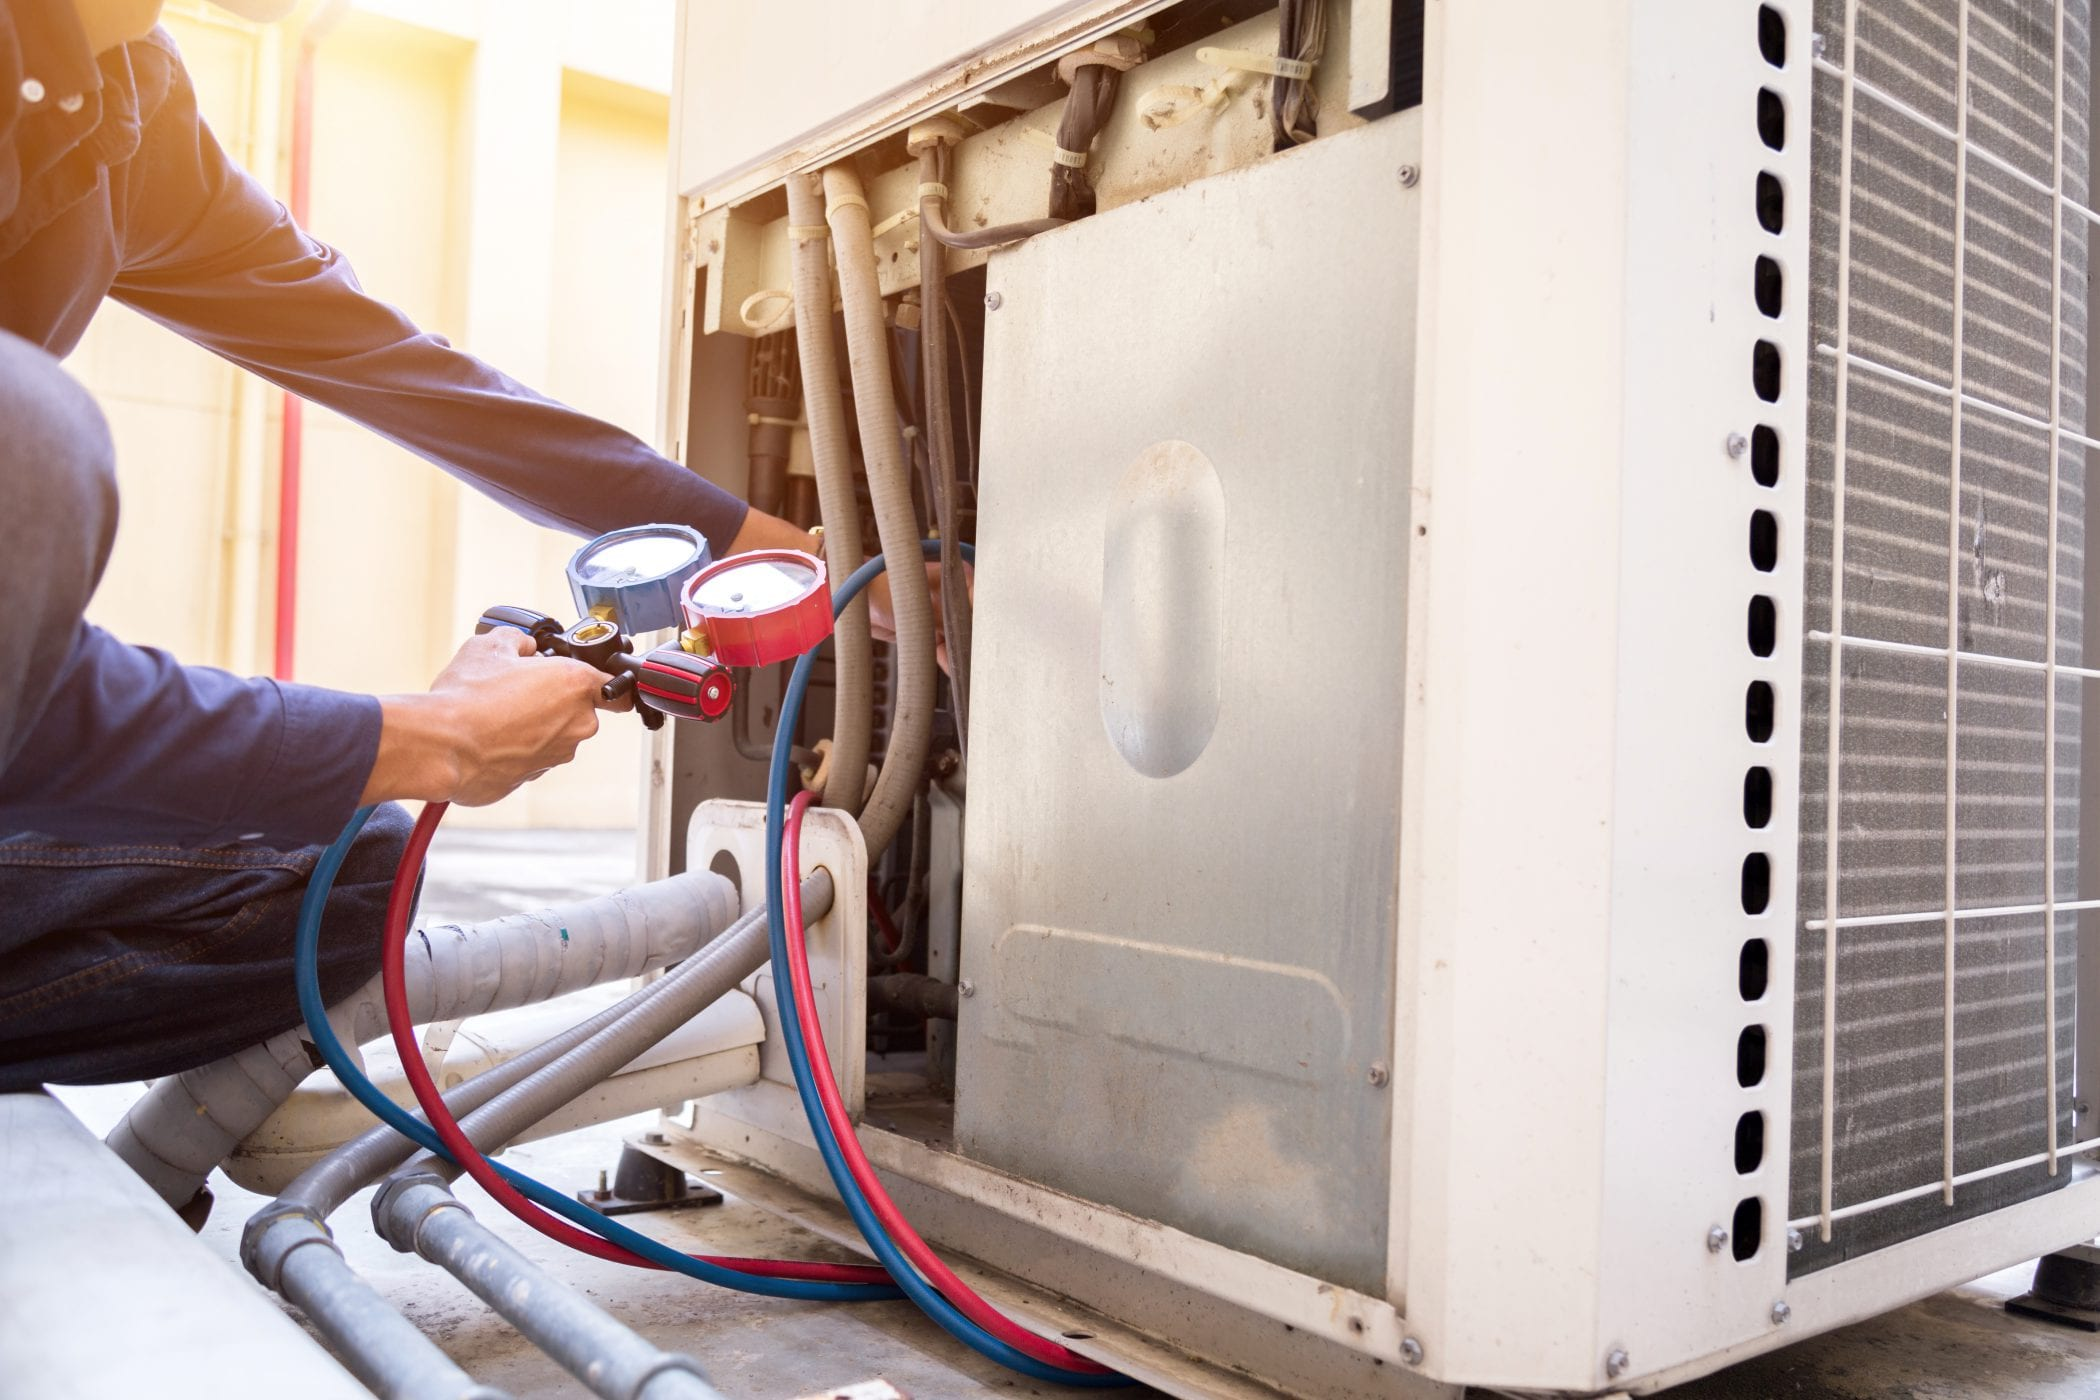 Heating, Air Conditioning, and Refrigeration Mechanics and Installers